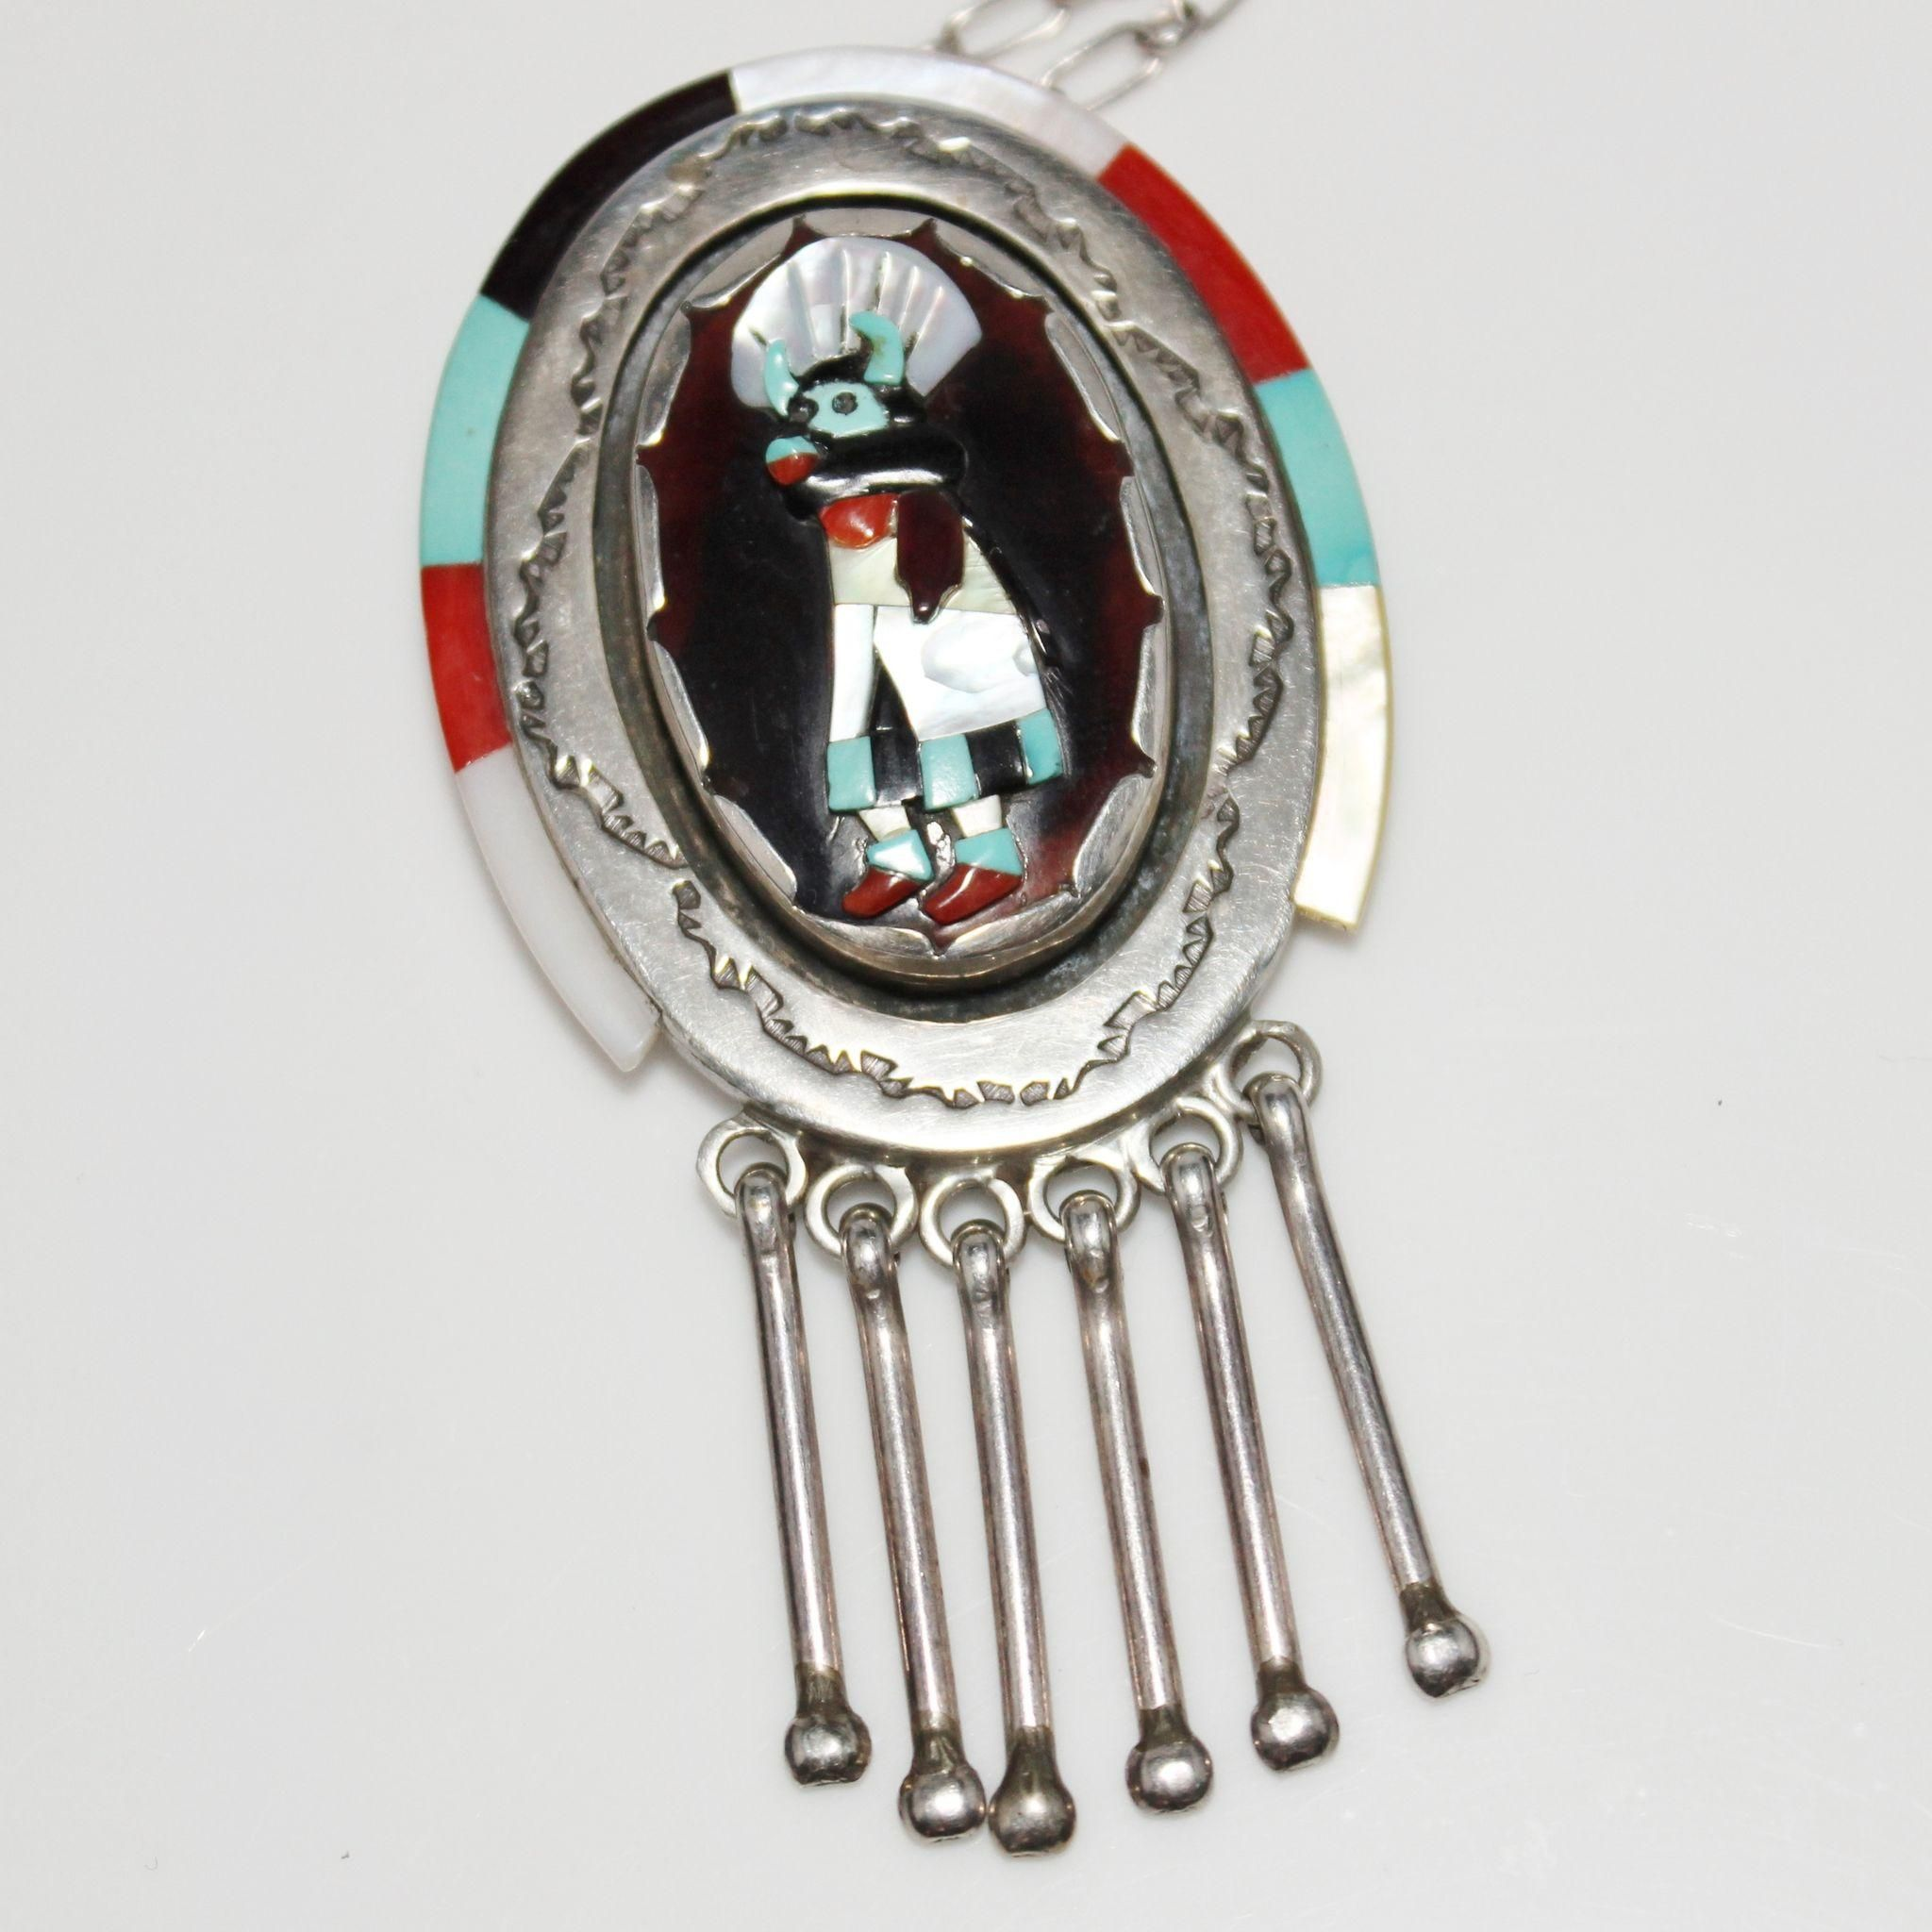 Vintage ronnie olivia calabaza zuni indian inlay cow or bull vintage ronnie olivia calabaza zuni indian inlay cow or bull kachina dancer necklace pendant mozeypictures Image collections